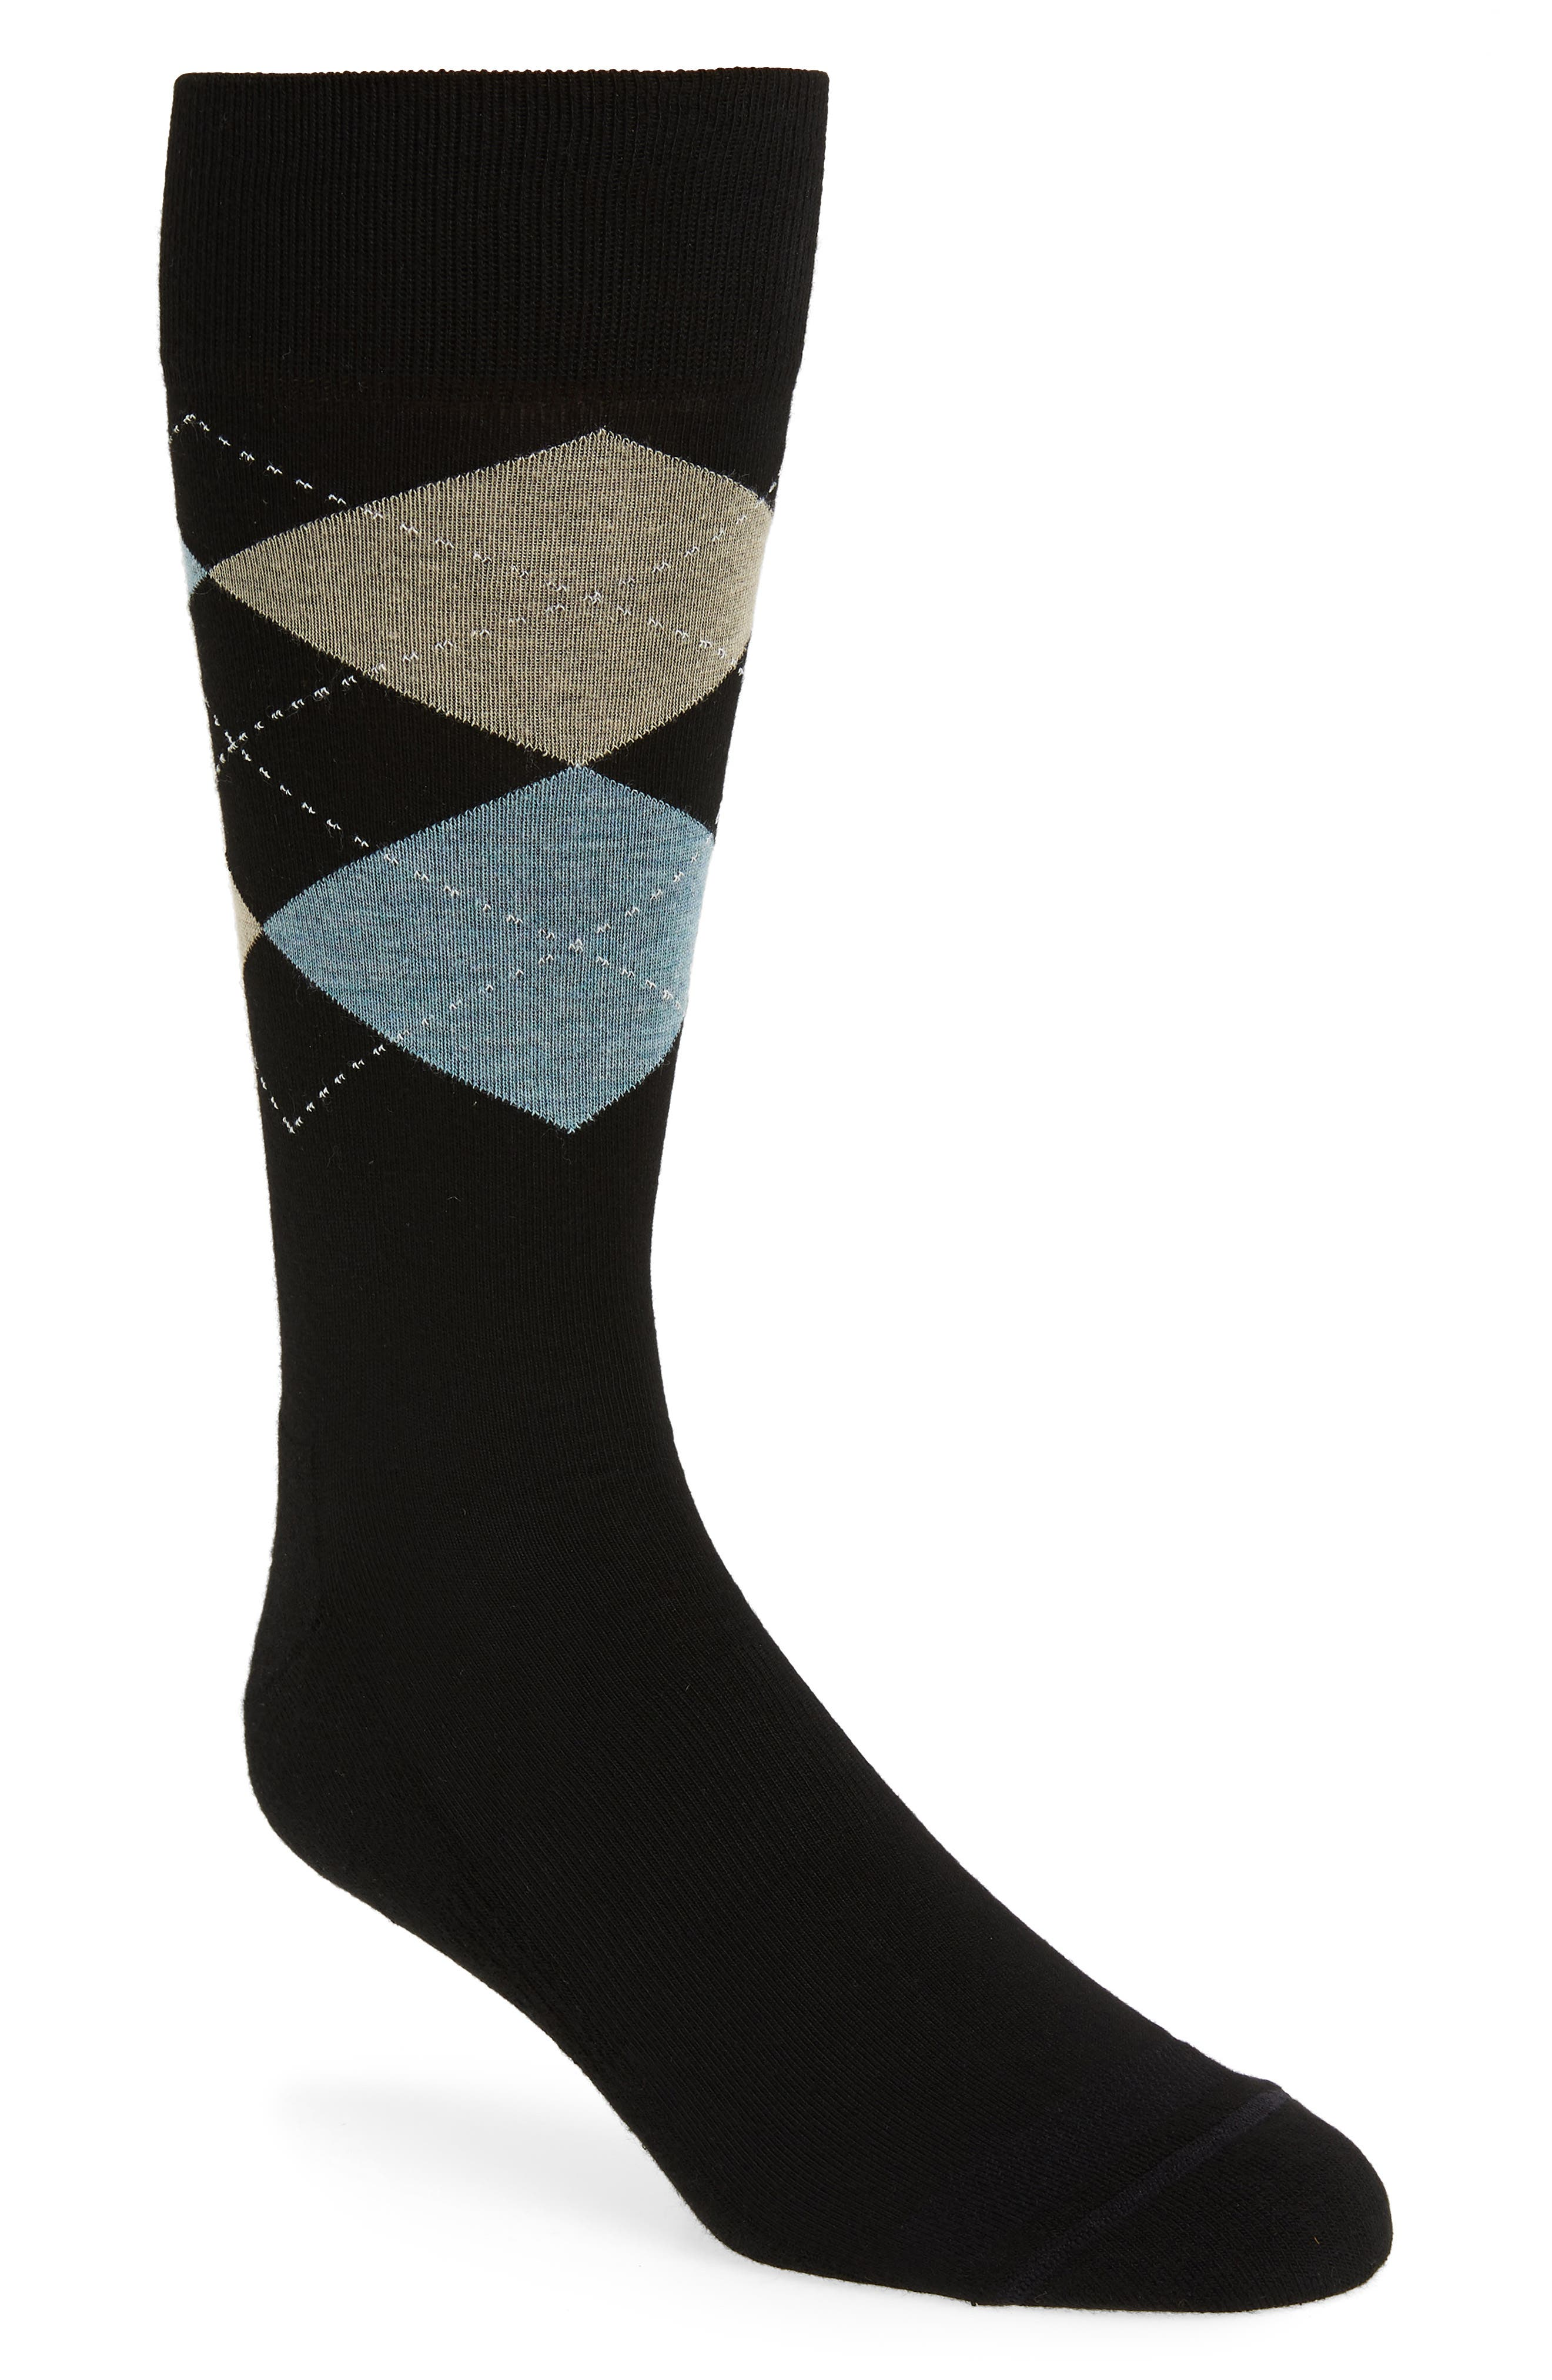 Argyle Dress Socks,                             Main thumbnail 1, color,                             BLACK/ TAUPE